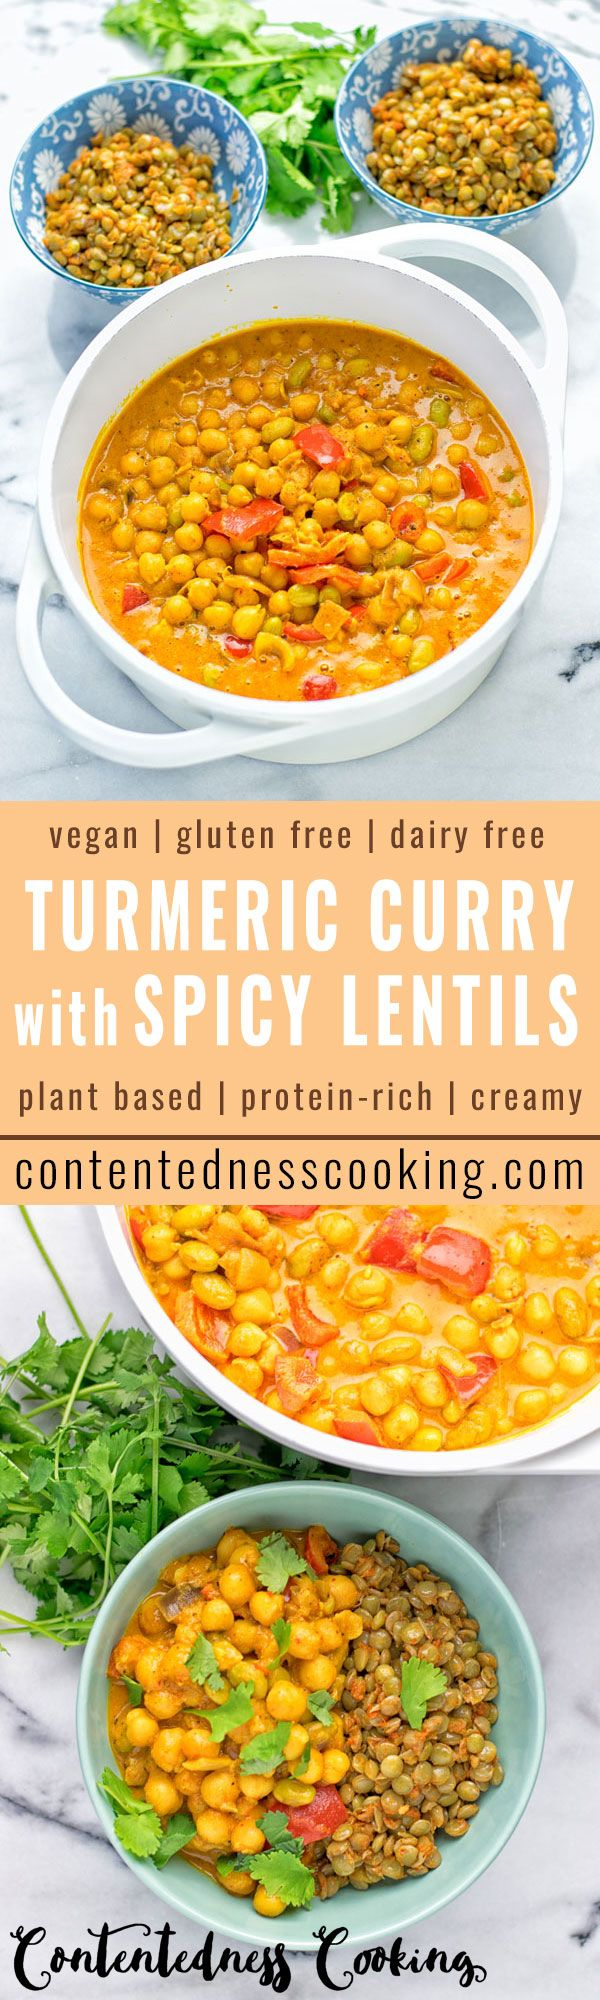 This Turmeric Curry with Spicy Lentils is filling, insanely delicious and super easy to make. Entirely vegan, gluten free and packed with fantastic flavors.